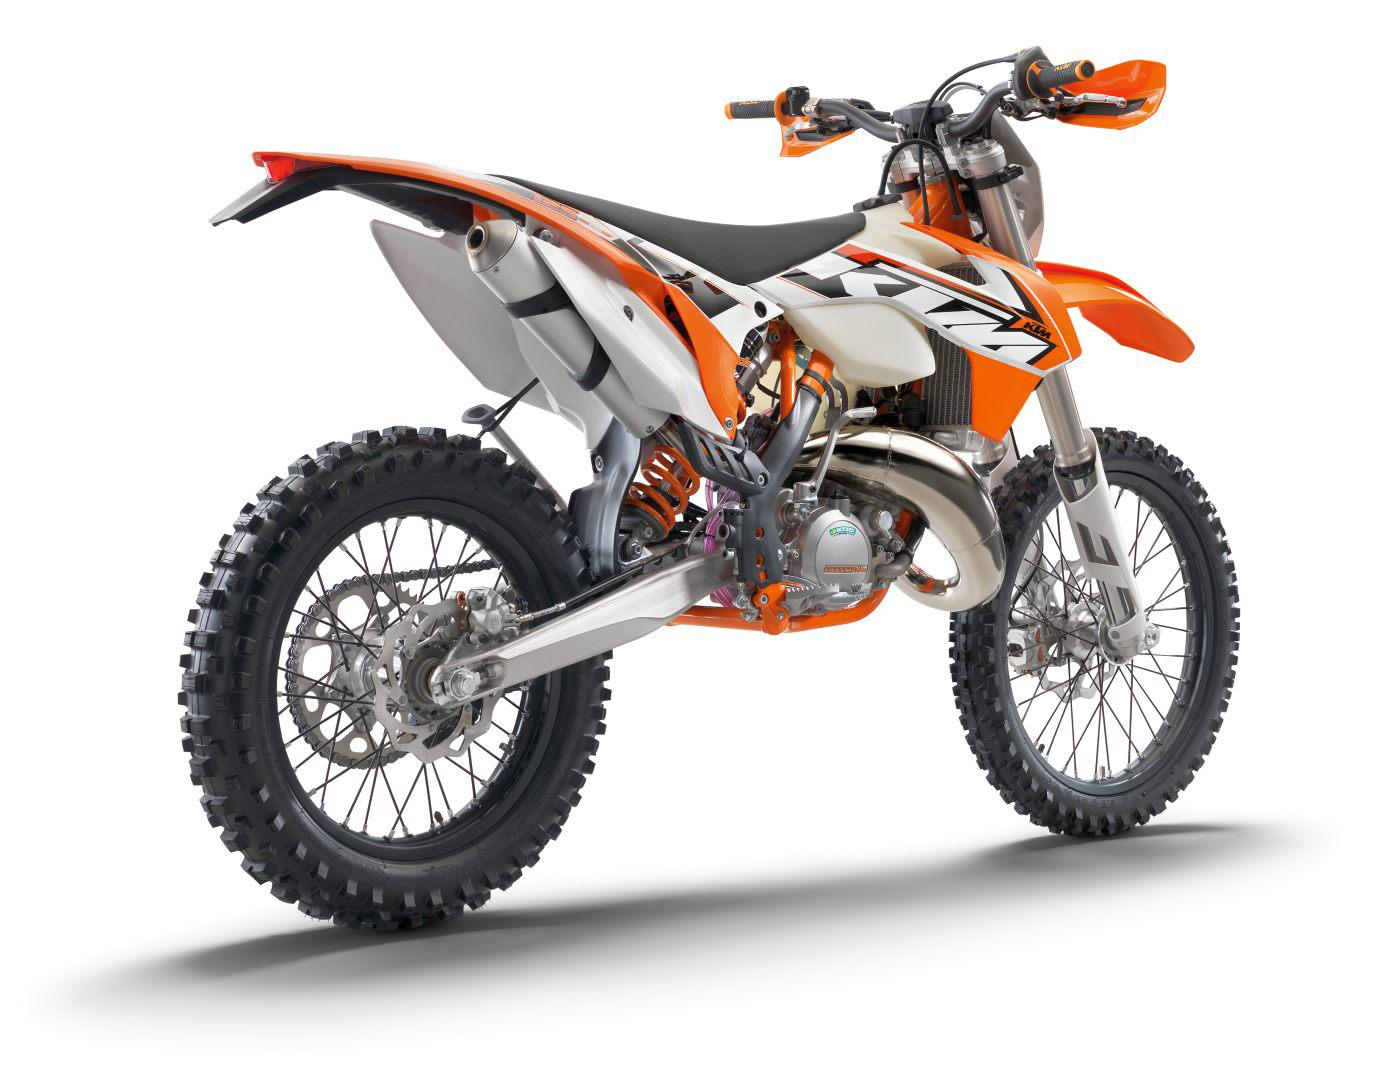 ktm ktm 125 enduro sport moto zombdrive com. Black Bedroom Furniture Sets. Home Design Ideas